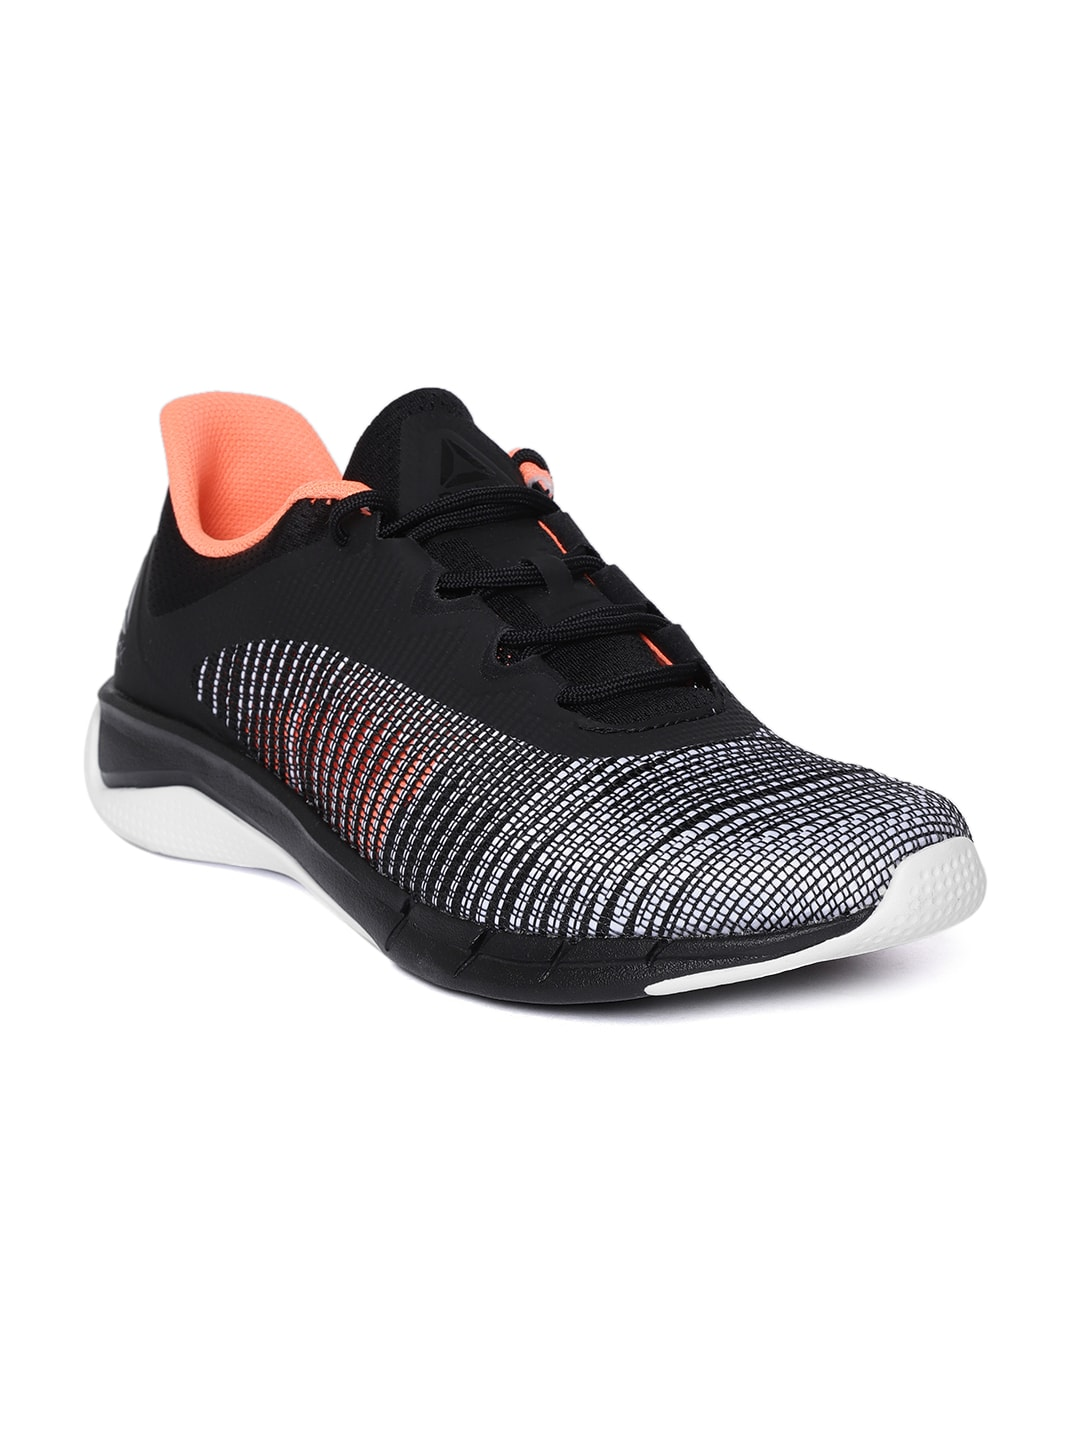 376c091a3bf4f7 Sports Shoes for Men - Buy Men Sports Shoes Online in India - Myntra